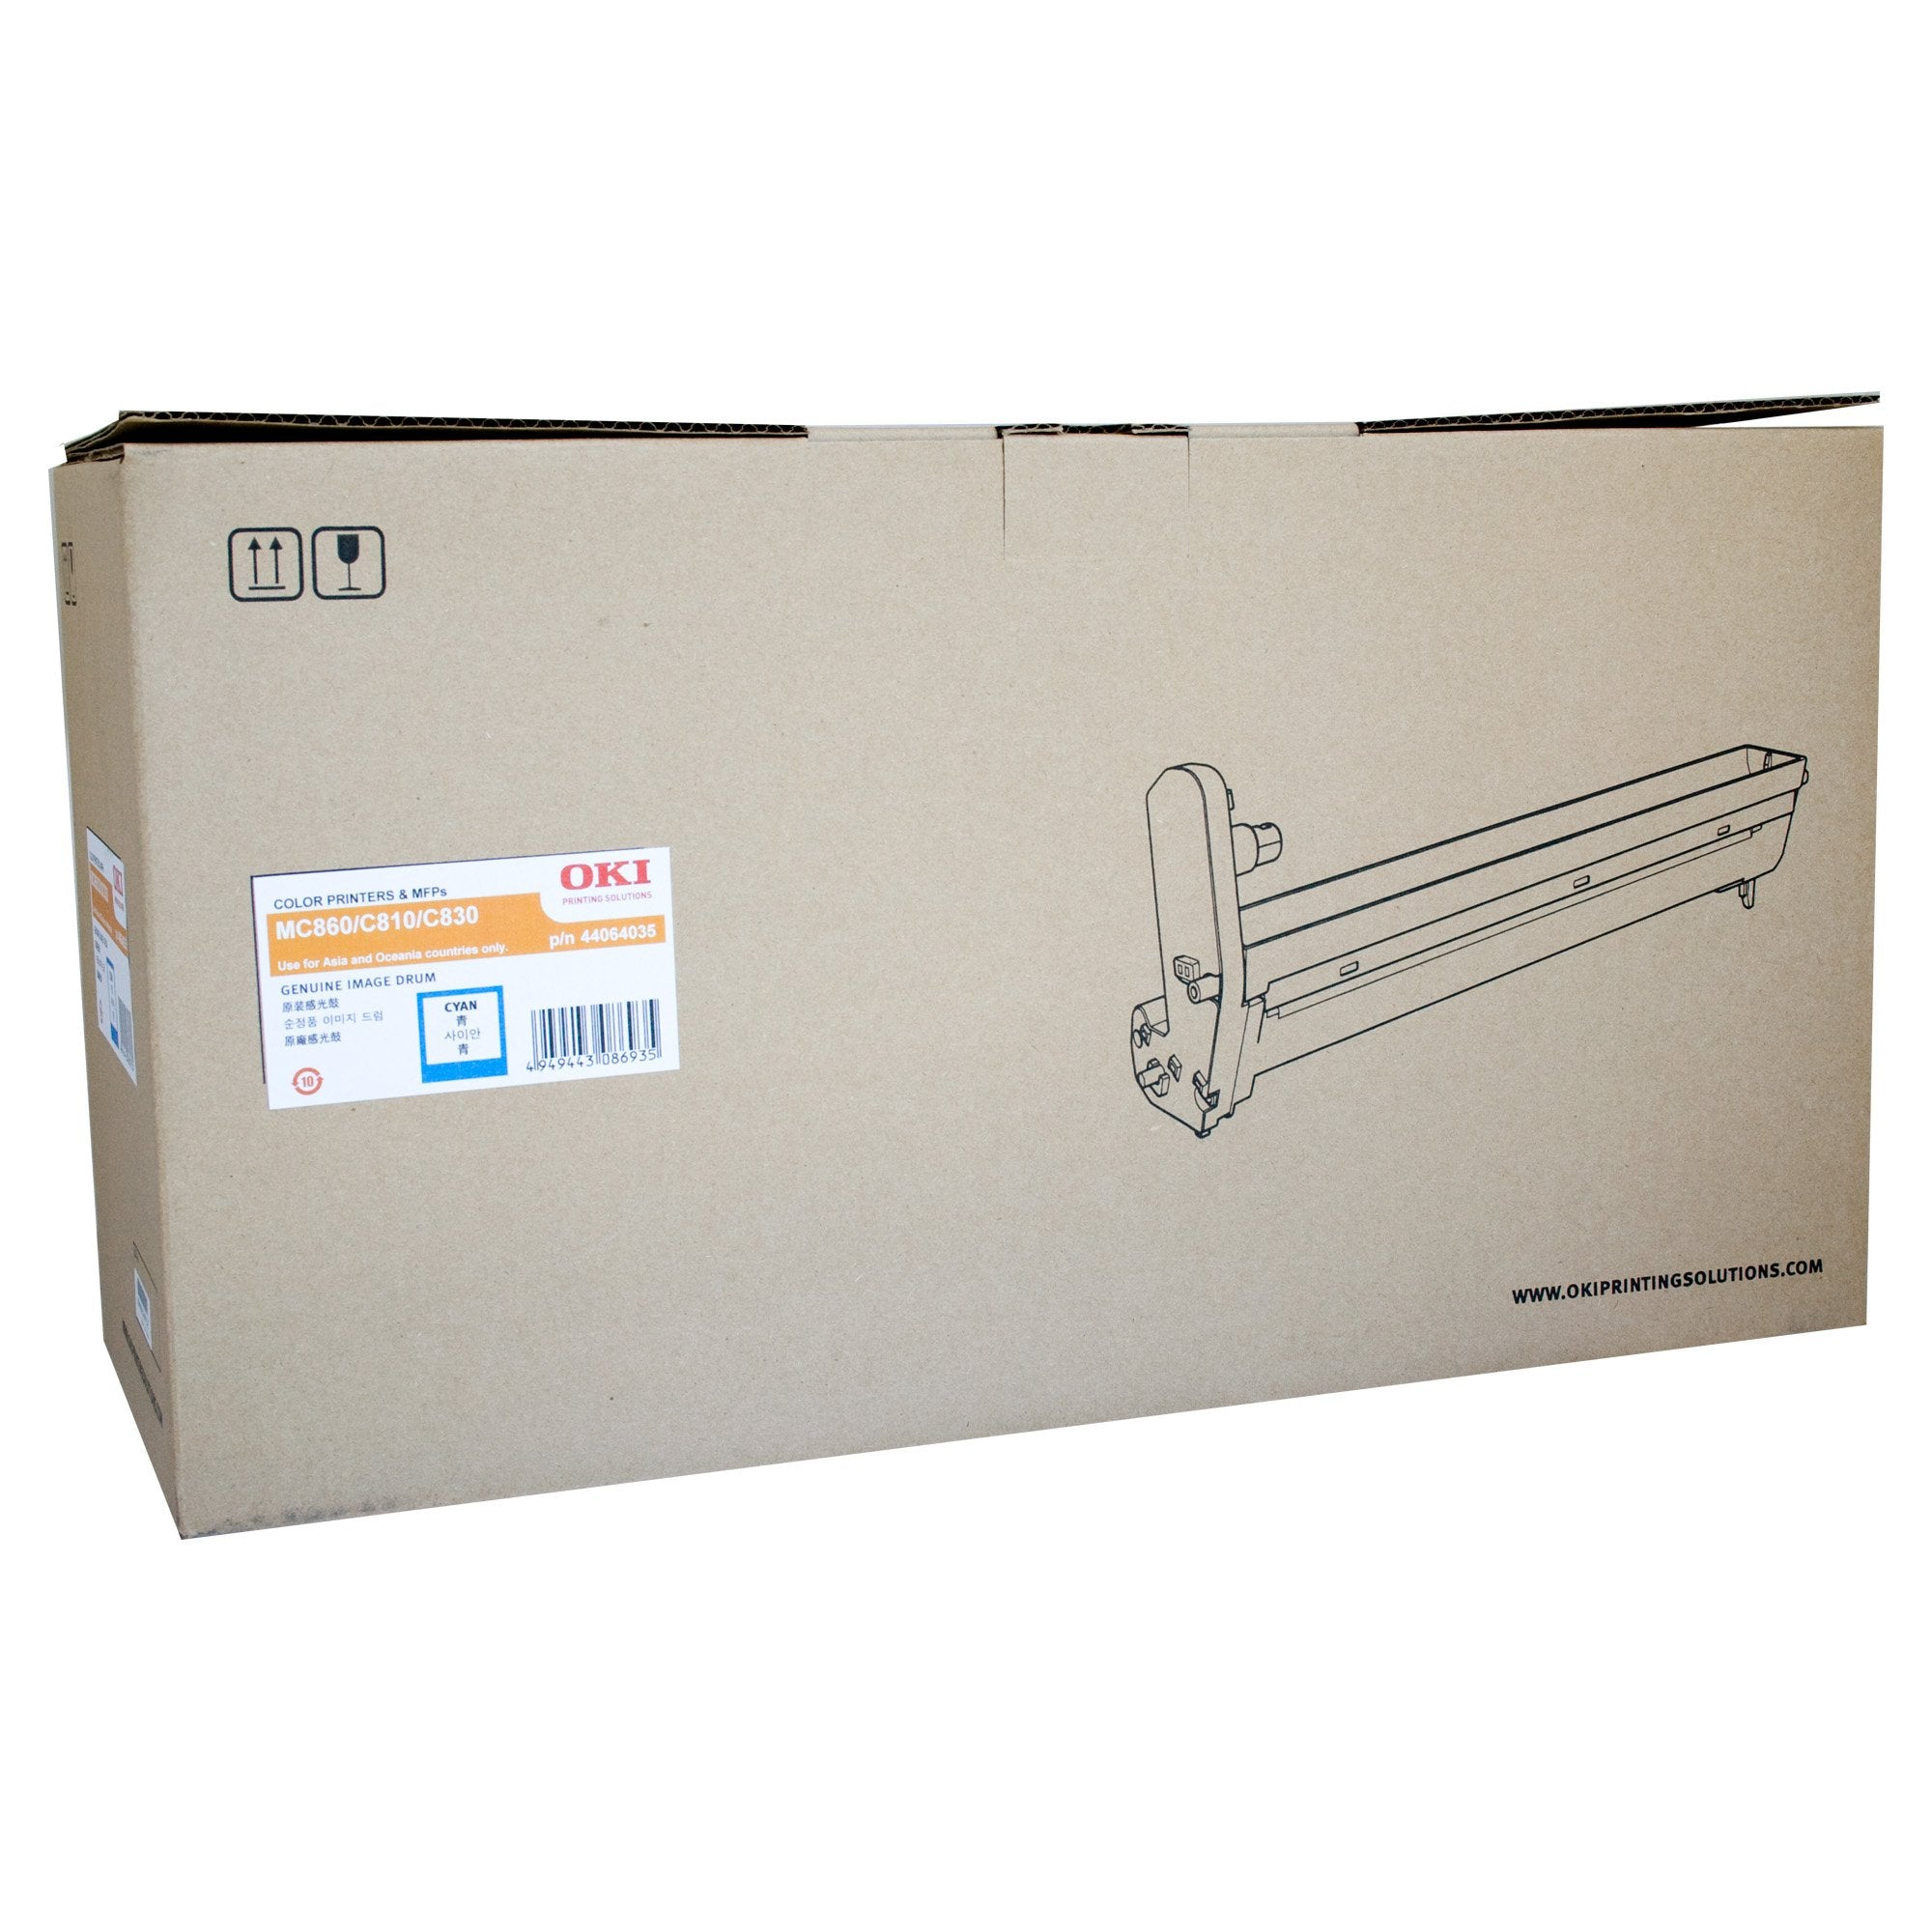 OKI 44064035 Drum Unit